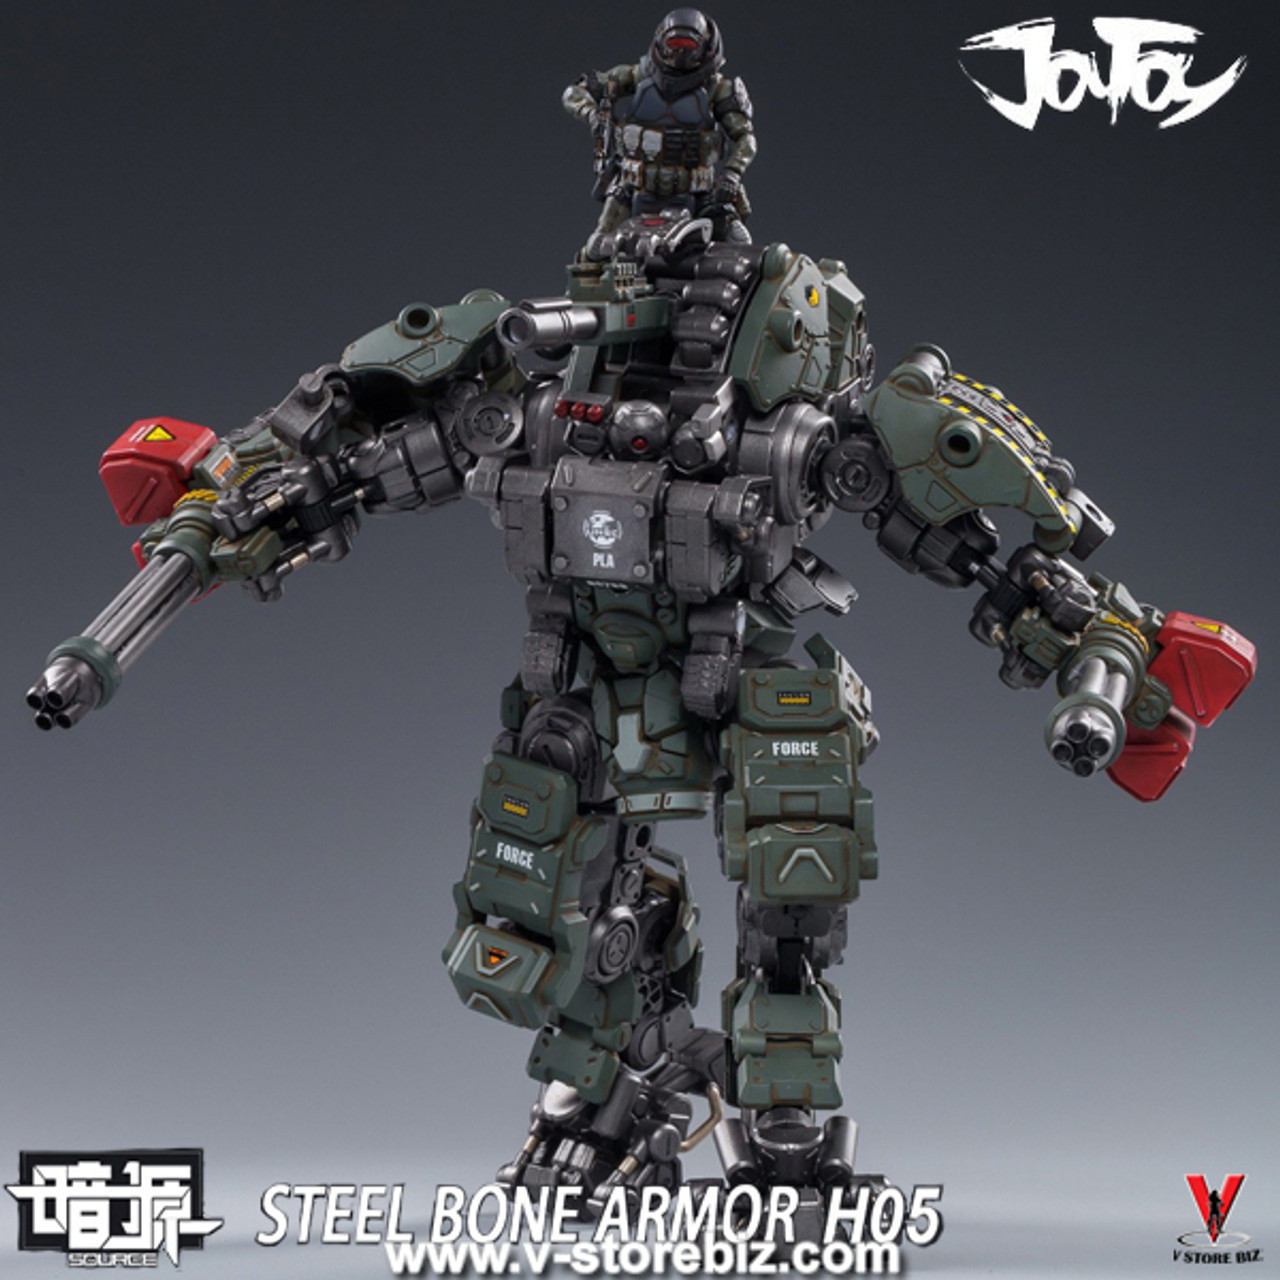 JOY TOY 1//25 Military Green Steel Bone H05 Heavy Firepower 23cm Armor Figure